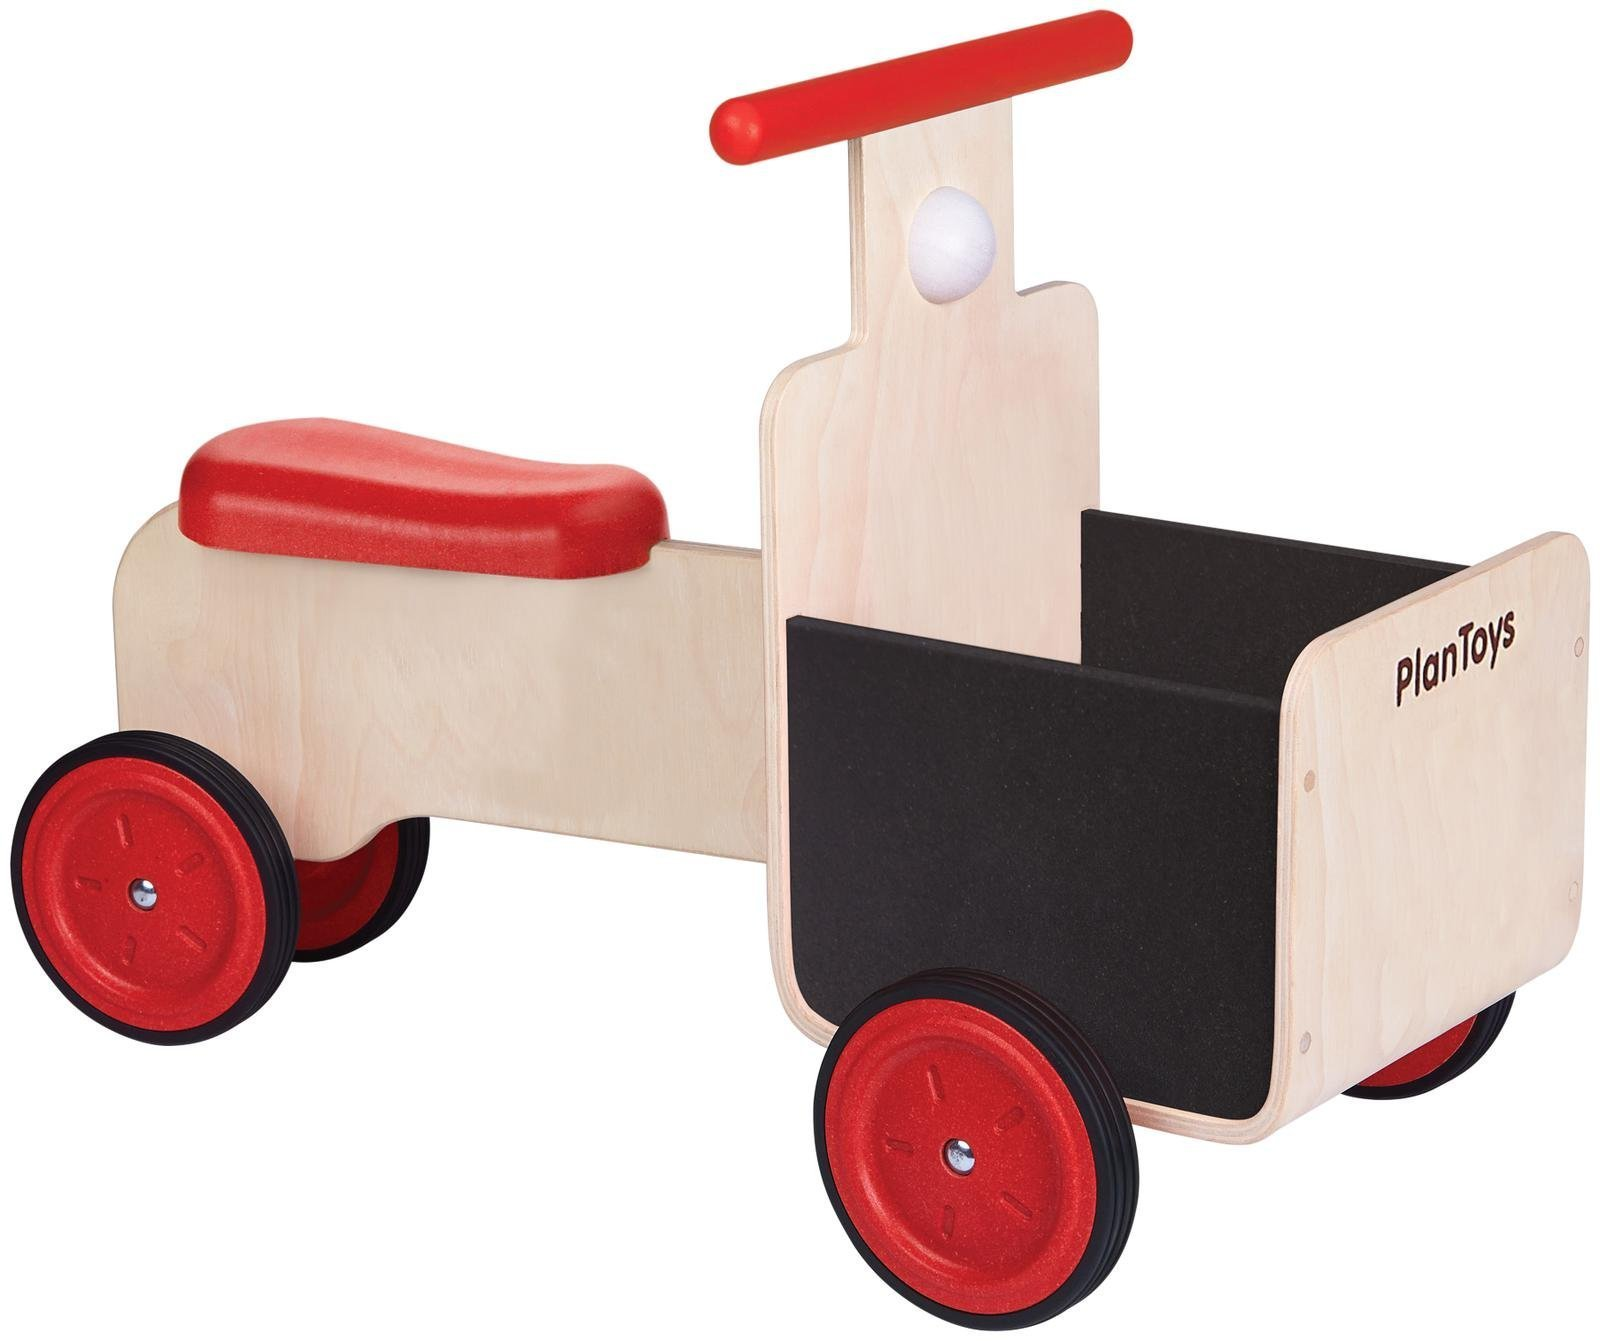 PlanToys 3479 Delivery Bike Ride On